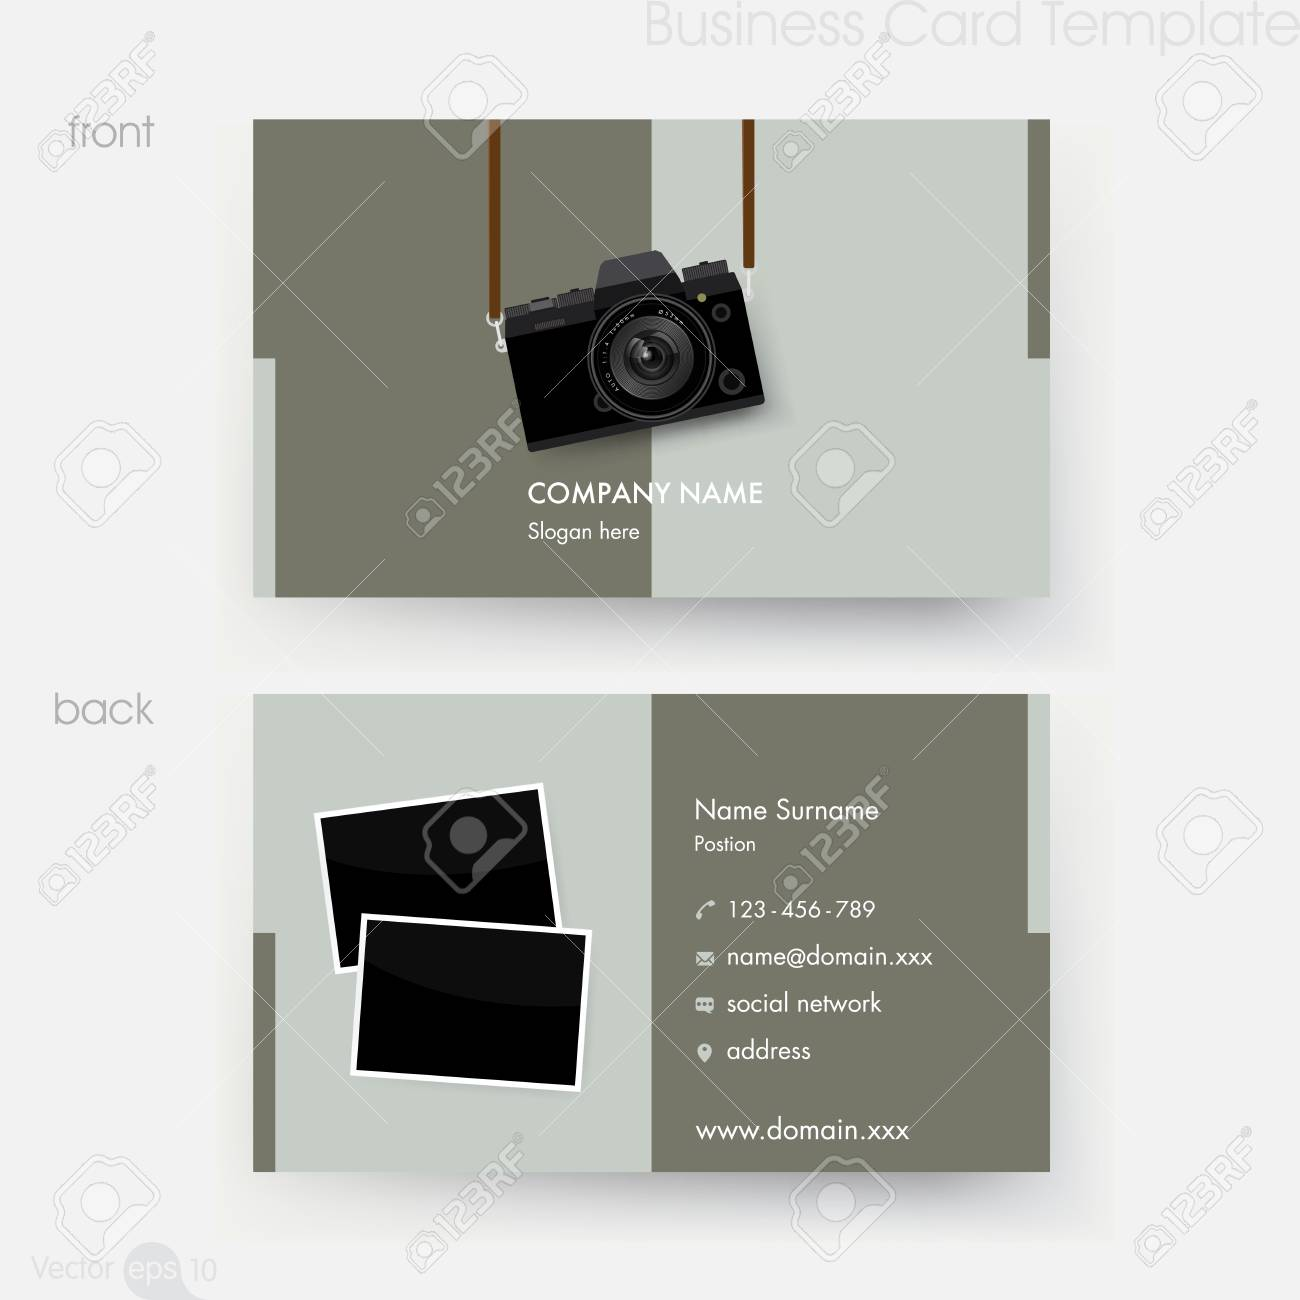 Photographer Business Card Template Royalty Free Cliparts, Vectors ...